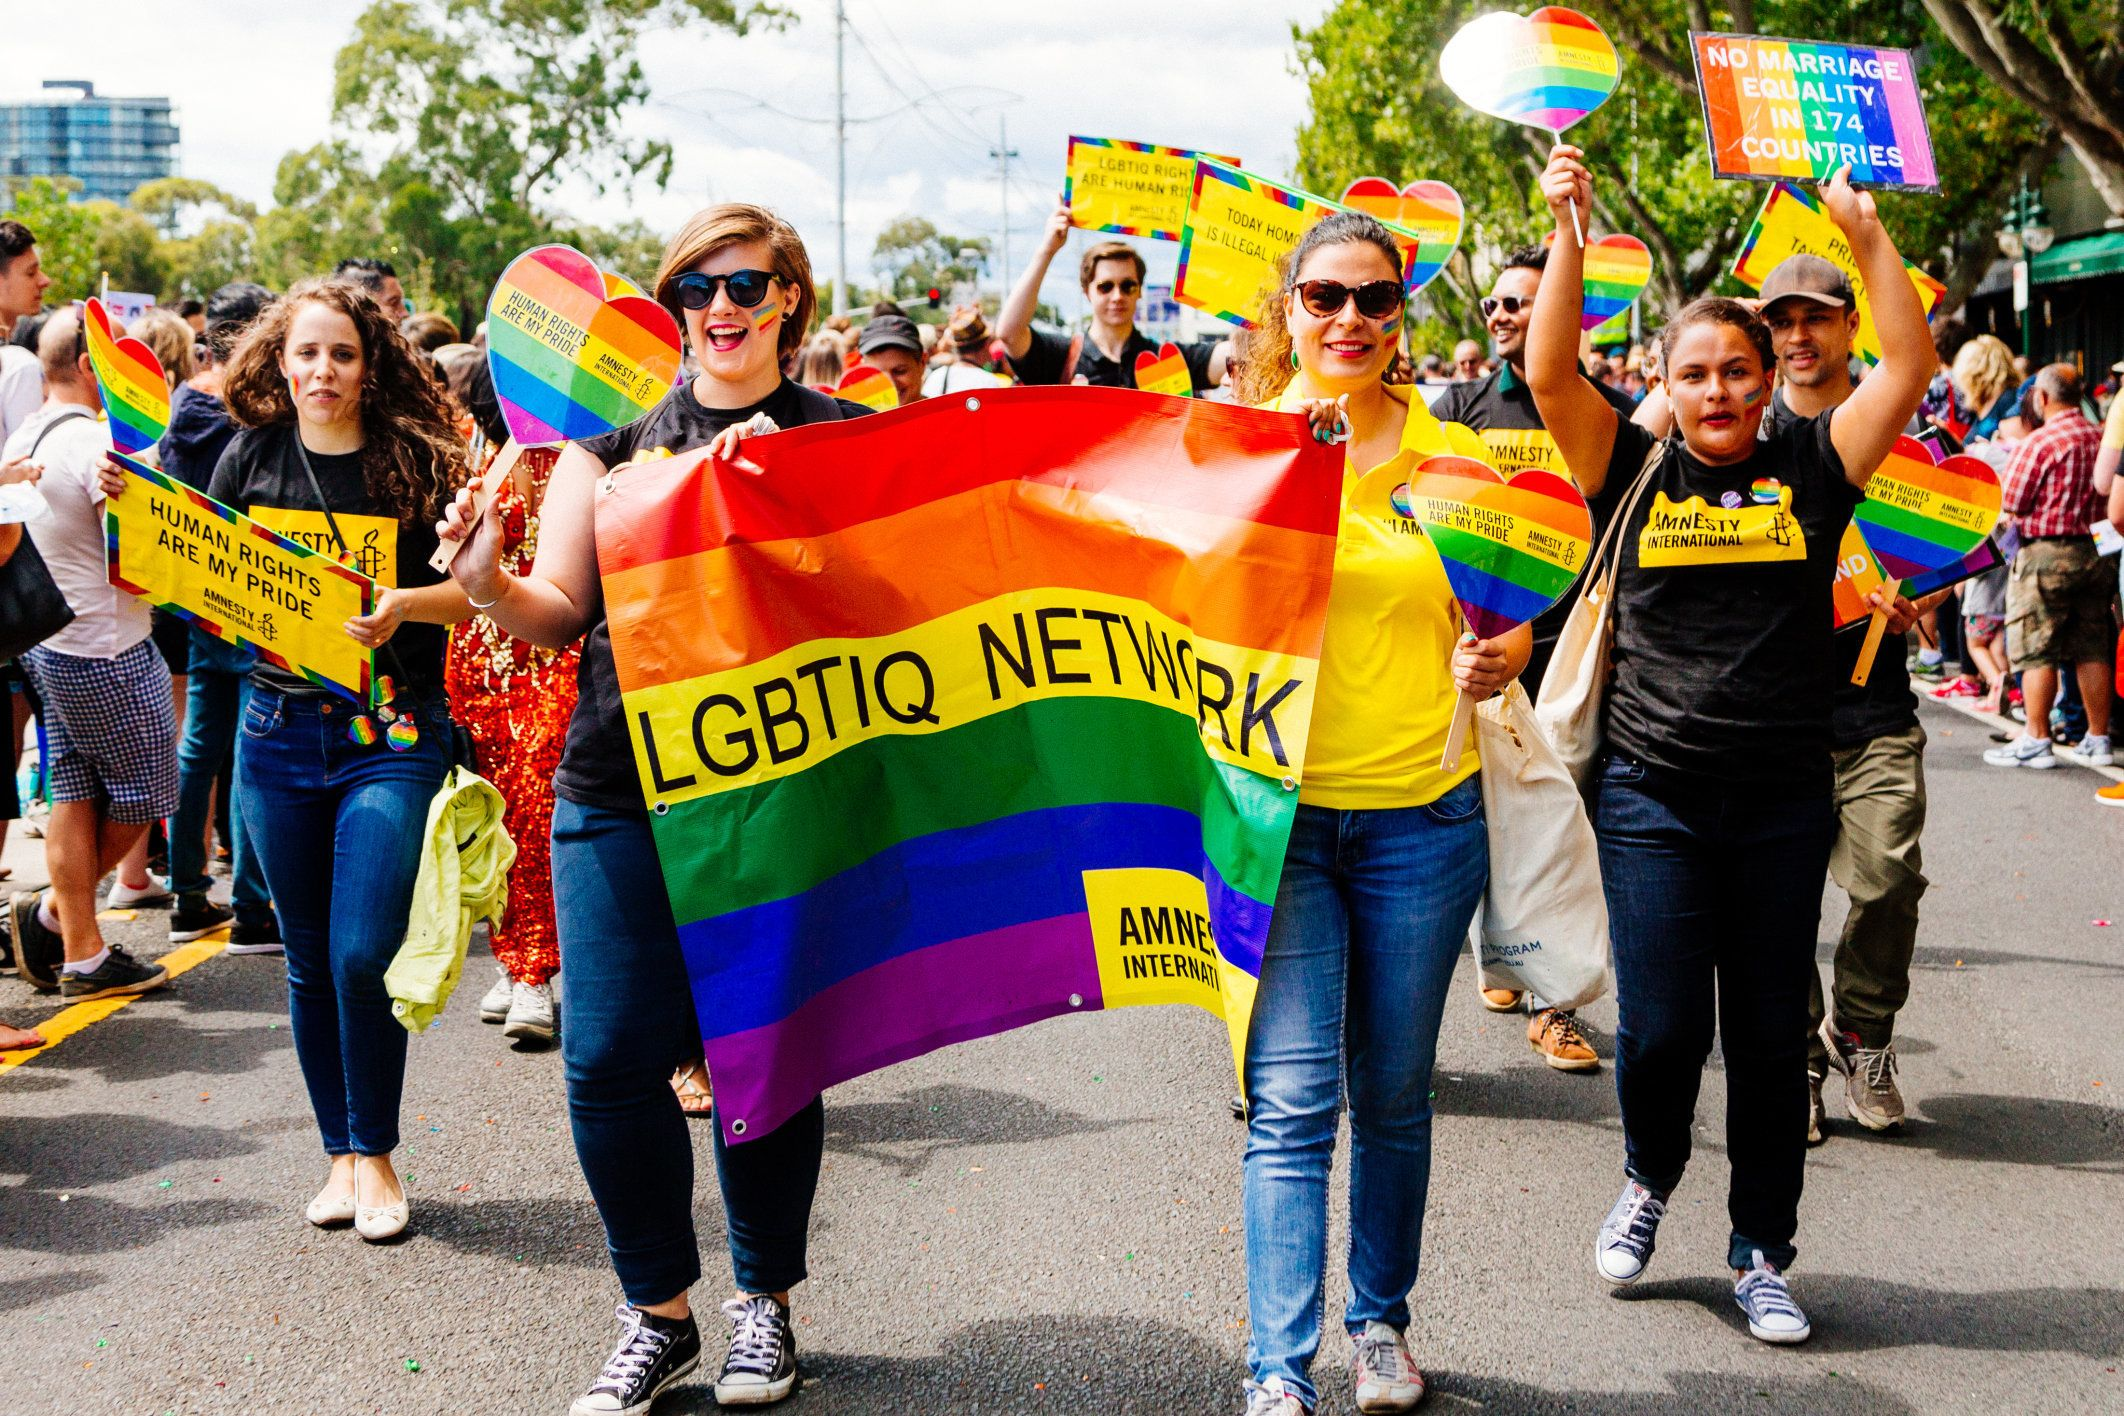 Members of the Amnesty International LGBTIQ network march during the MidSumma festival Pride march in Australia, calling for